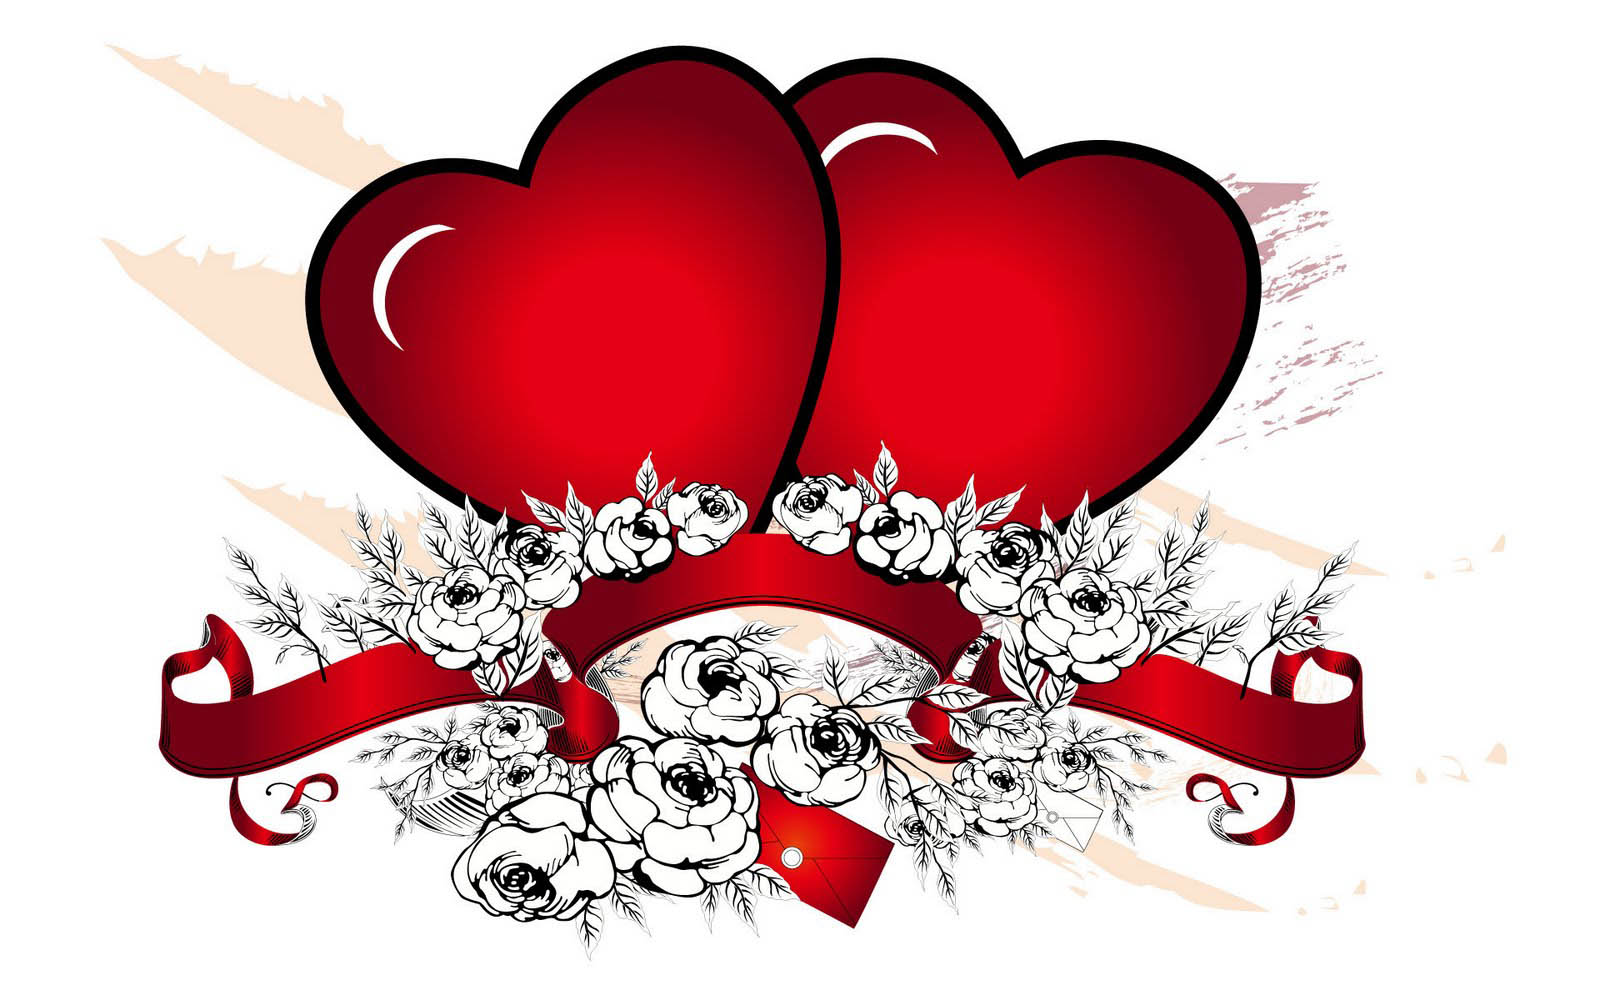 124 best love images on pinterest | red hearts, happy heart and heart